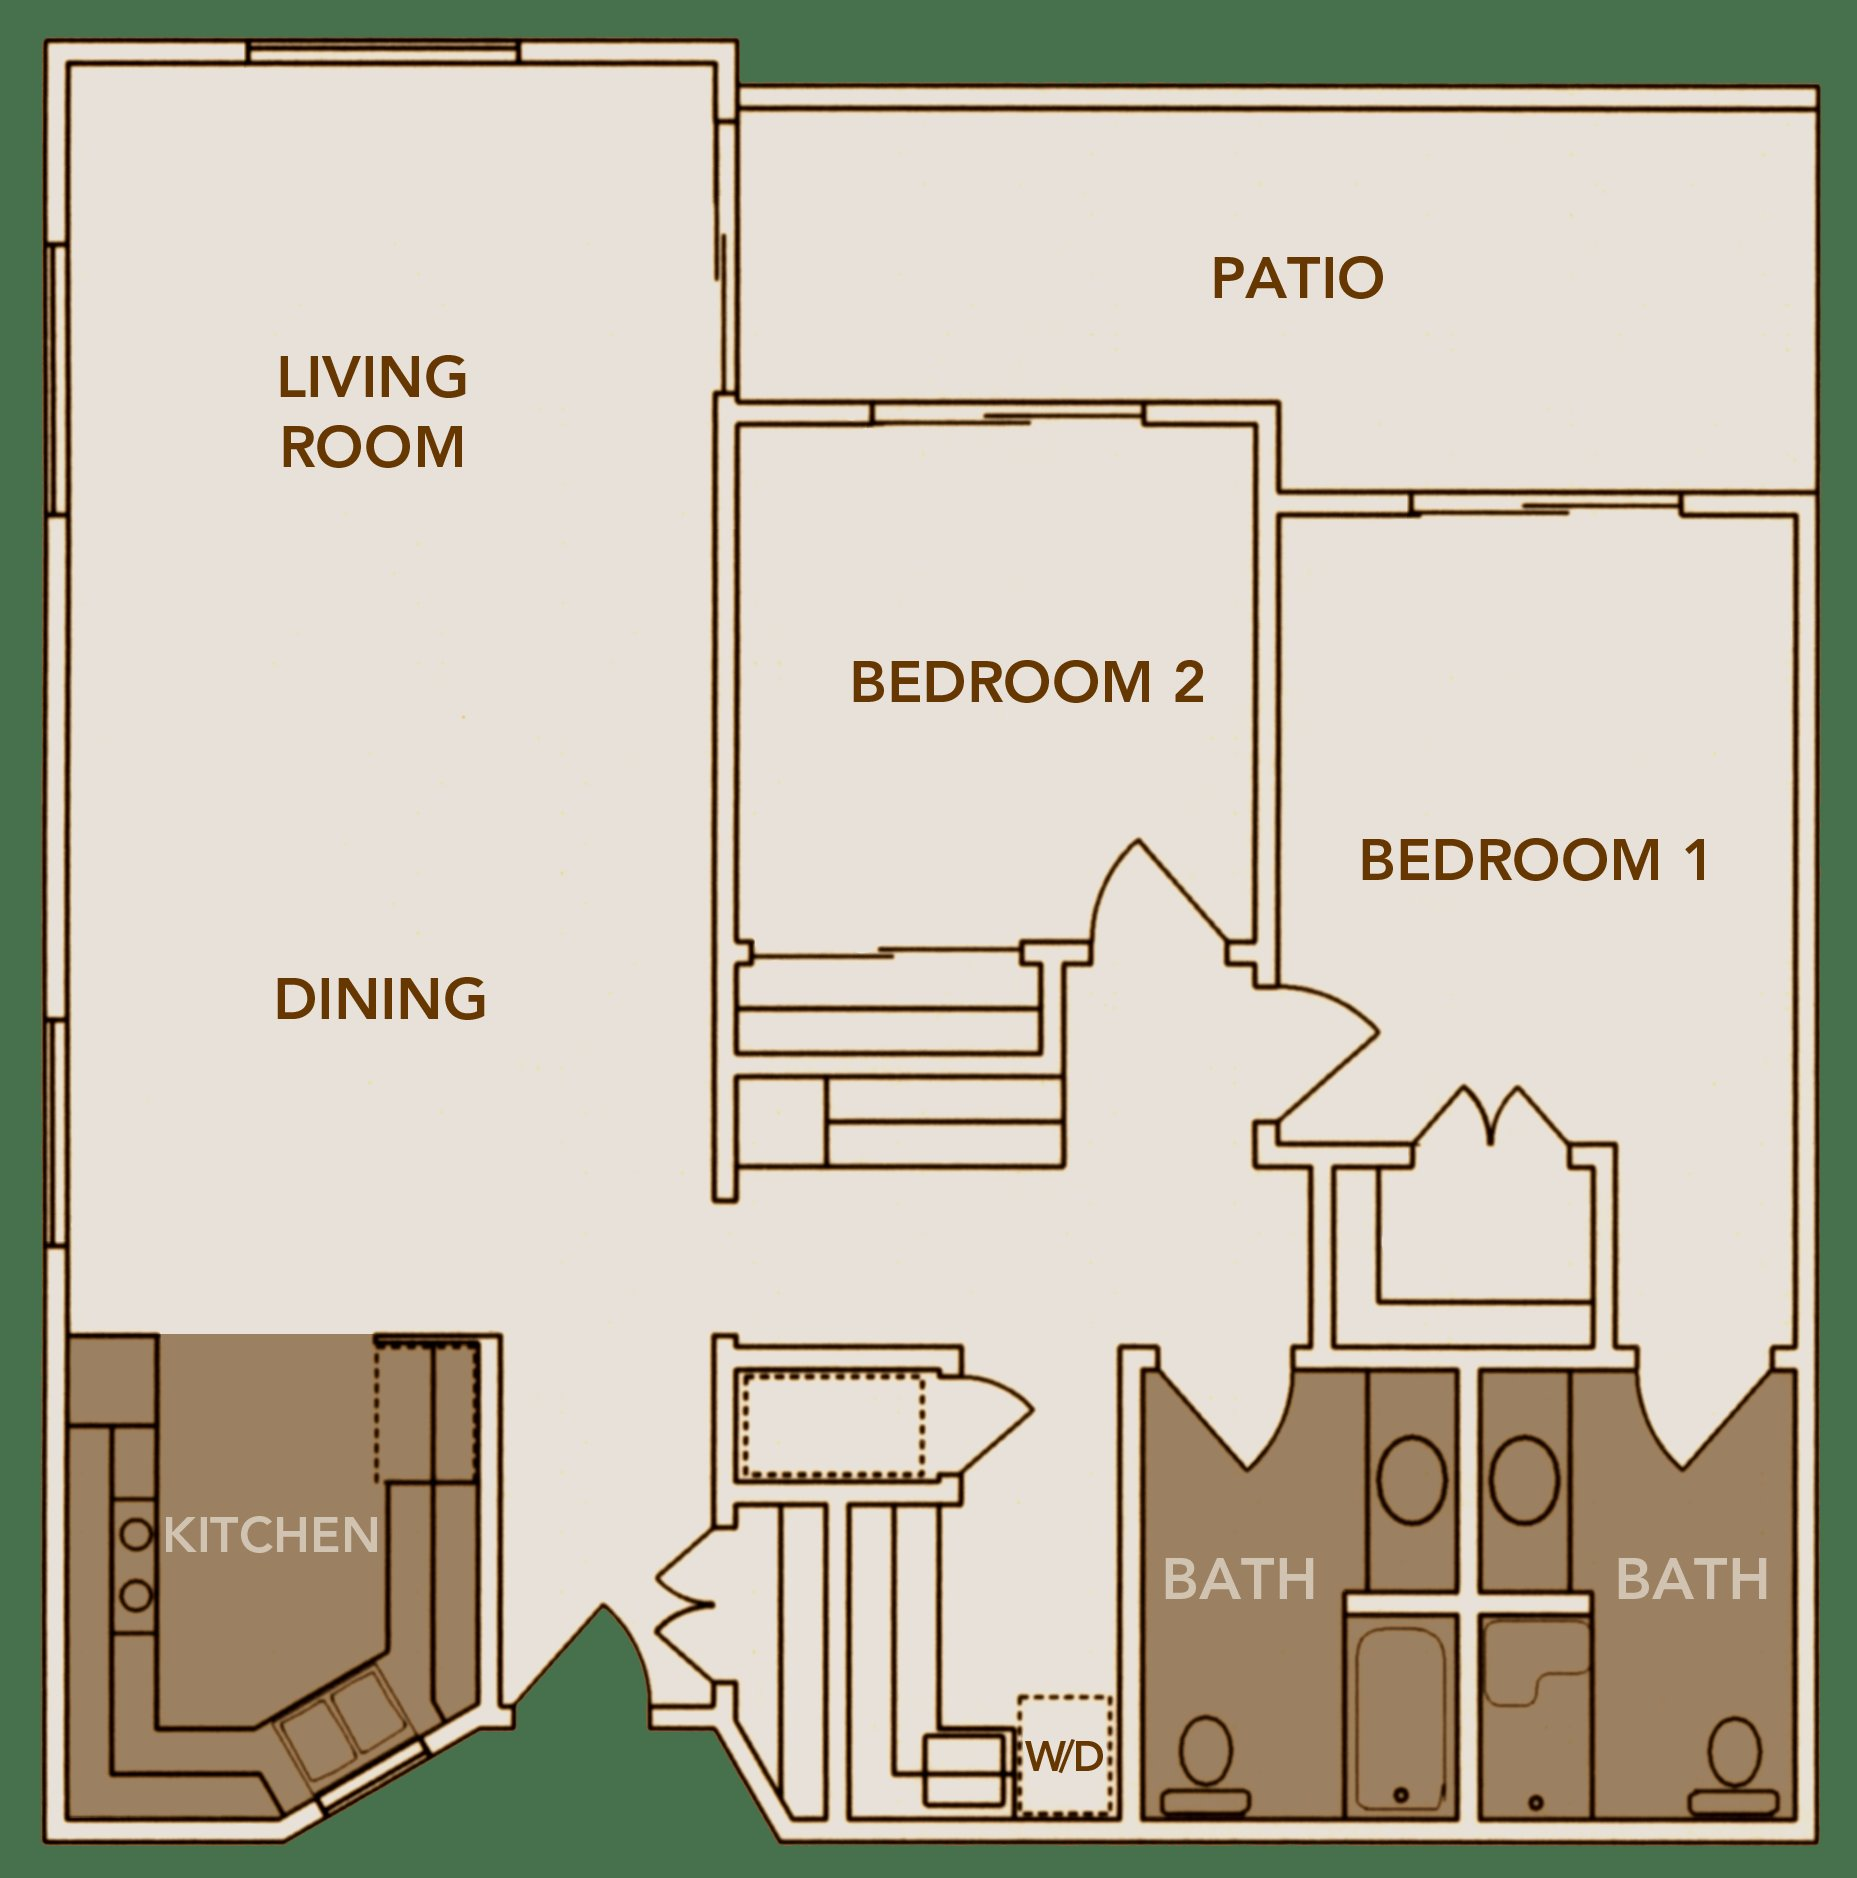 Best Floor Plans Inland Christian Home A Multi Level Senior With Pictures Original 1024 x 768